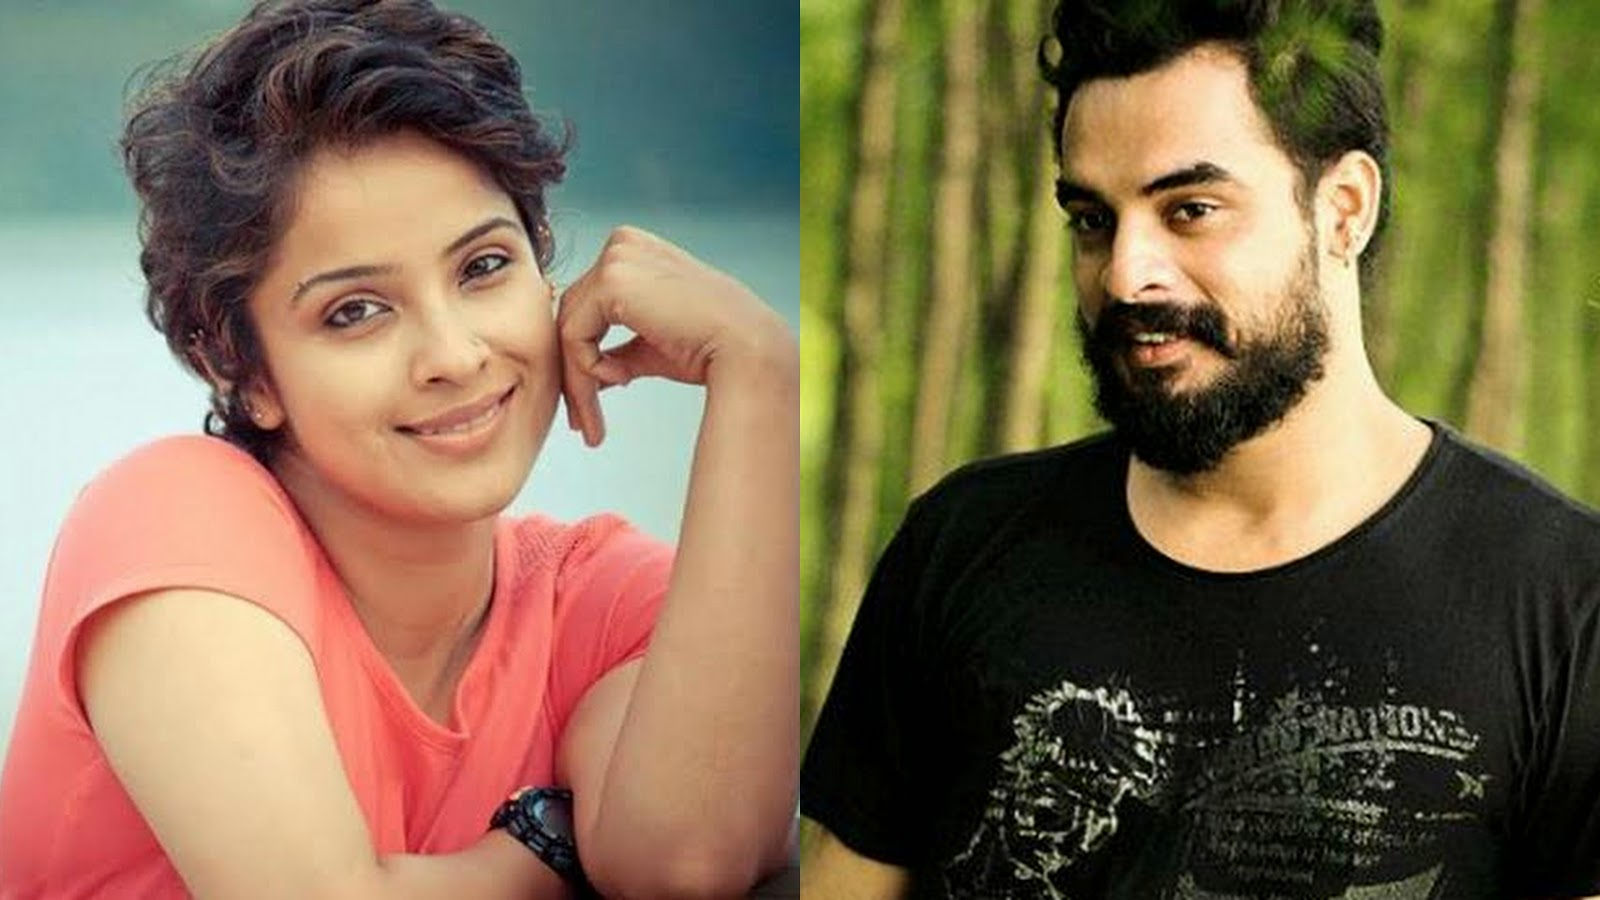 Aparna Gopinath and Tovino